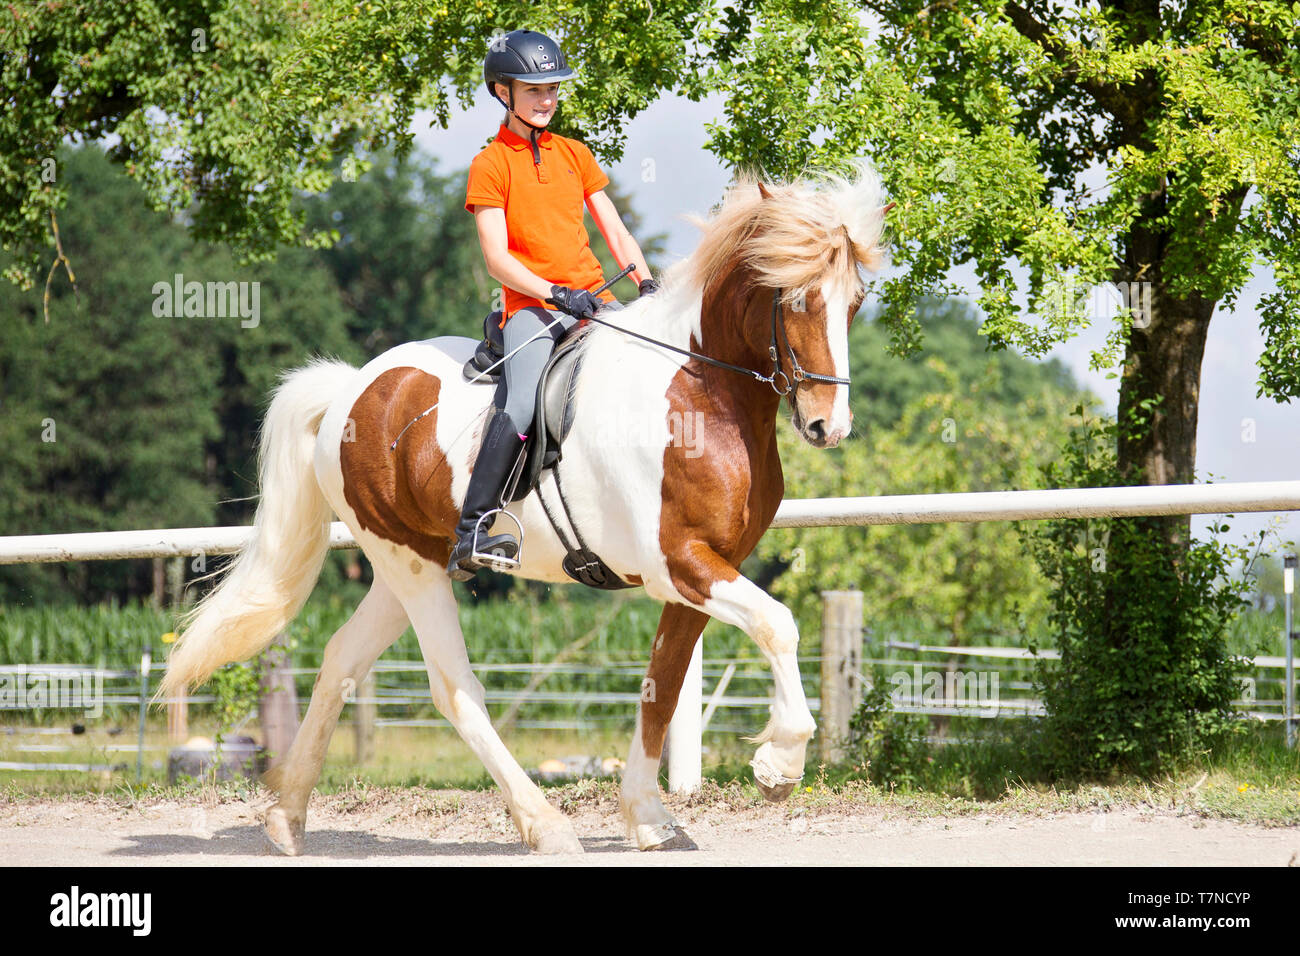 Icelandic Horse being ridden at a toelt. Austria - Stock Image